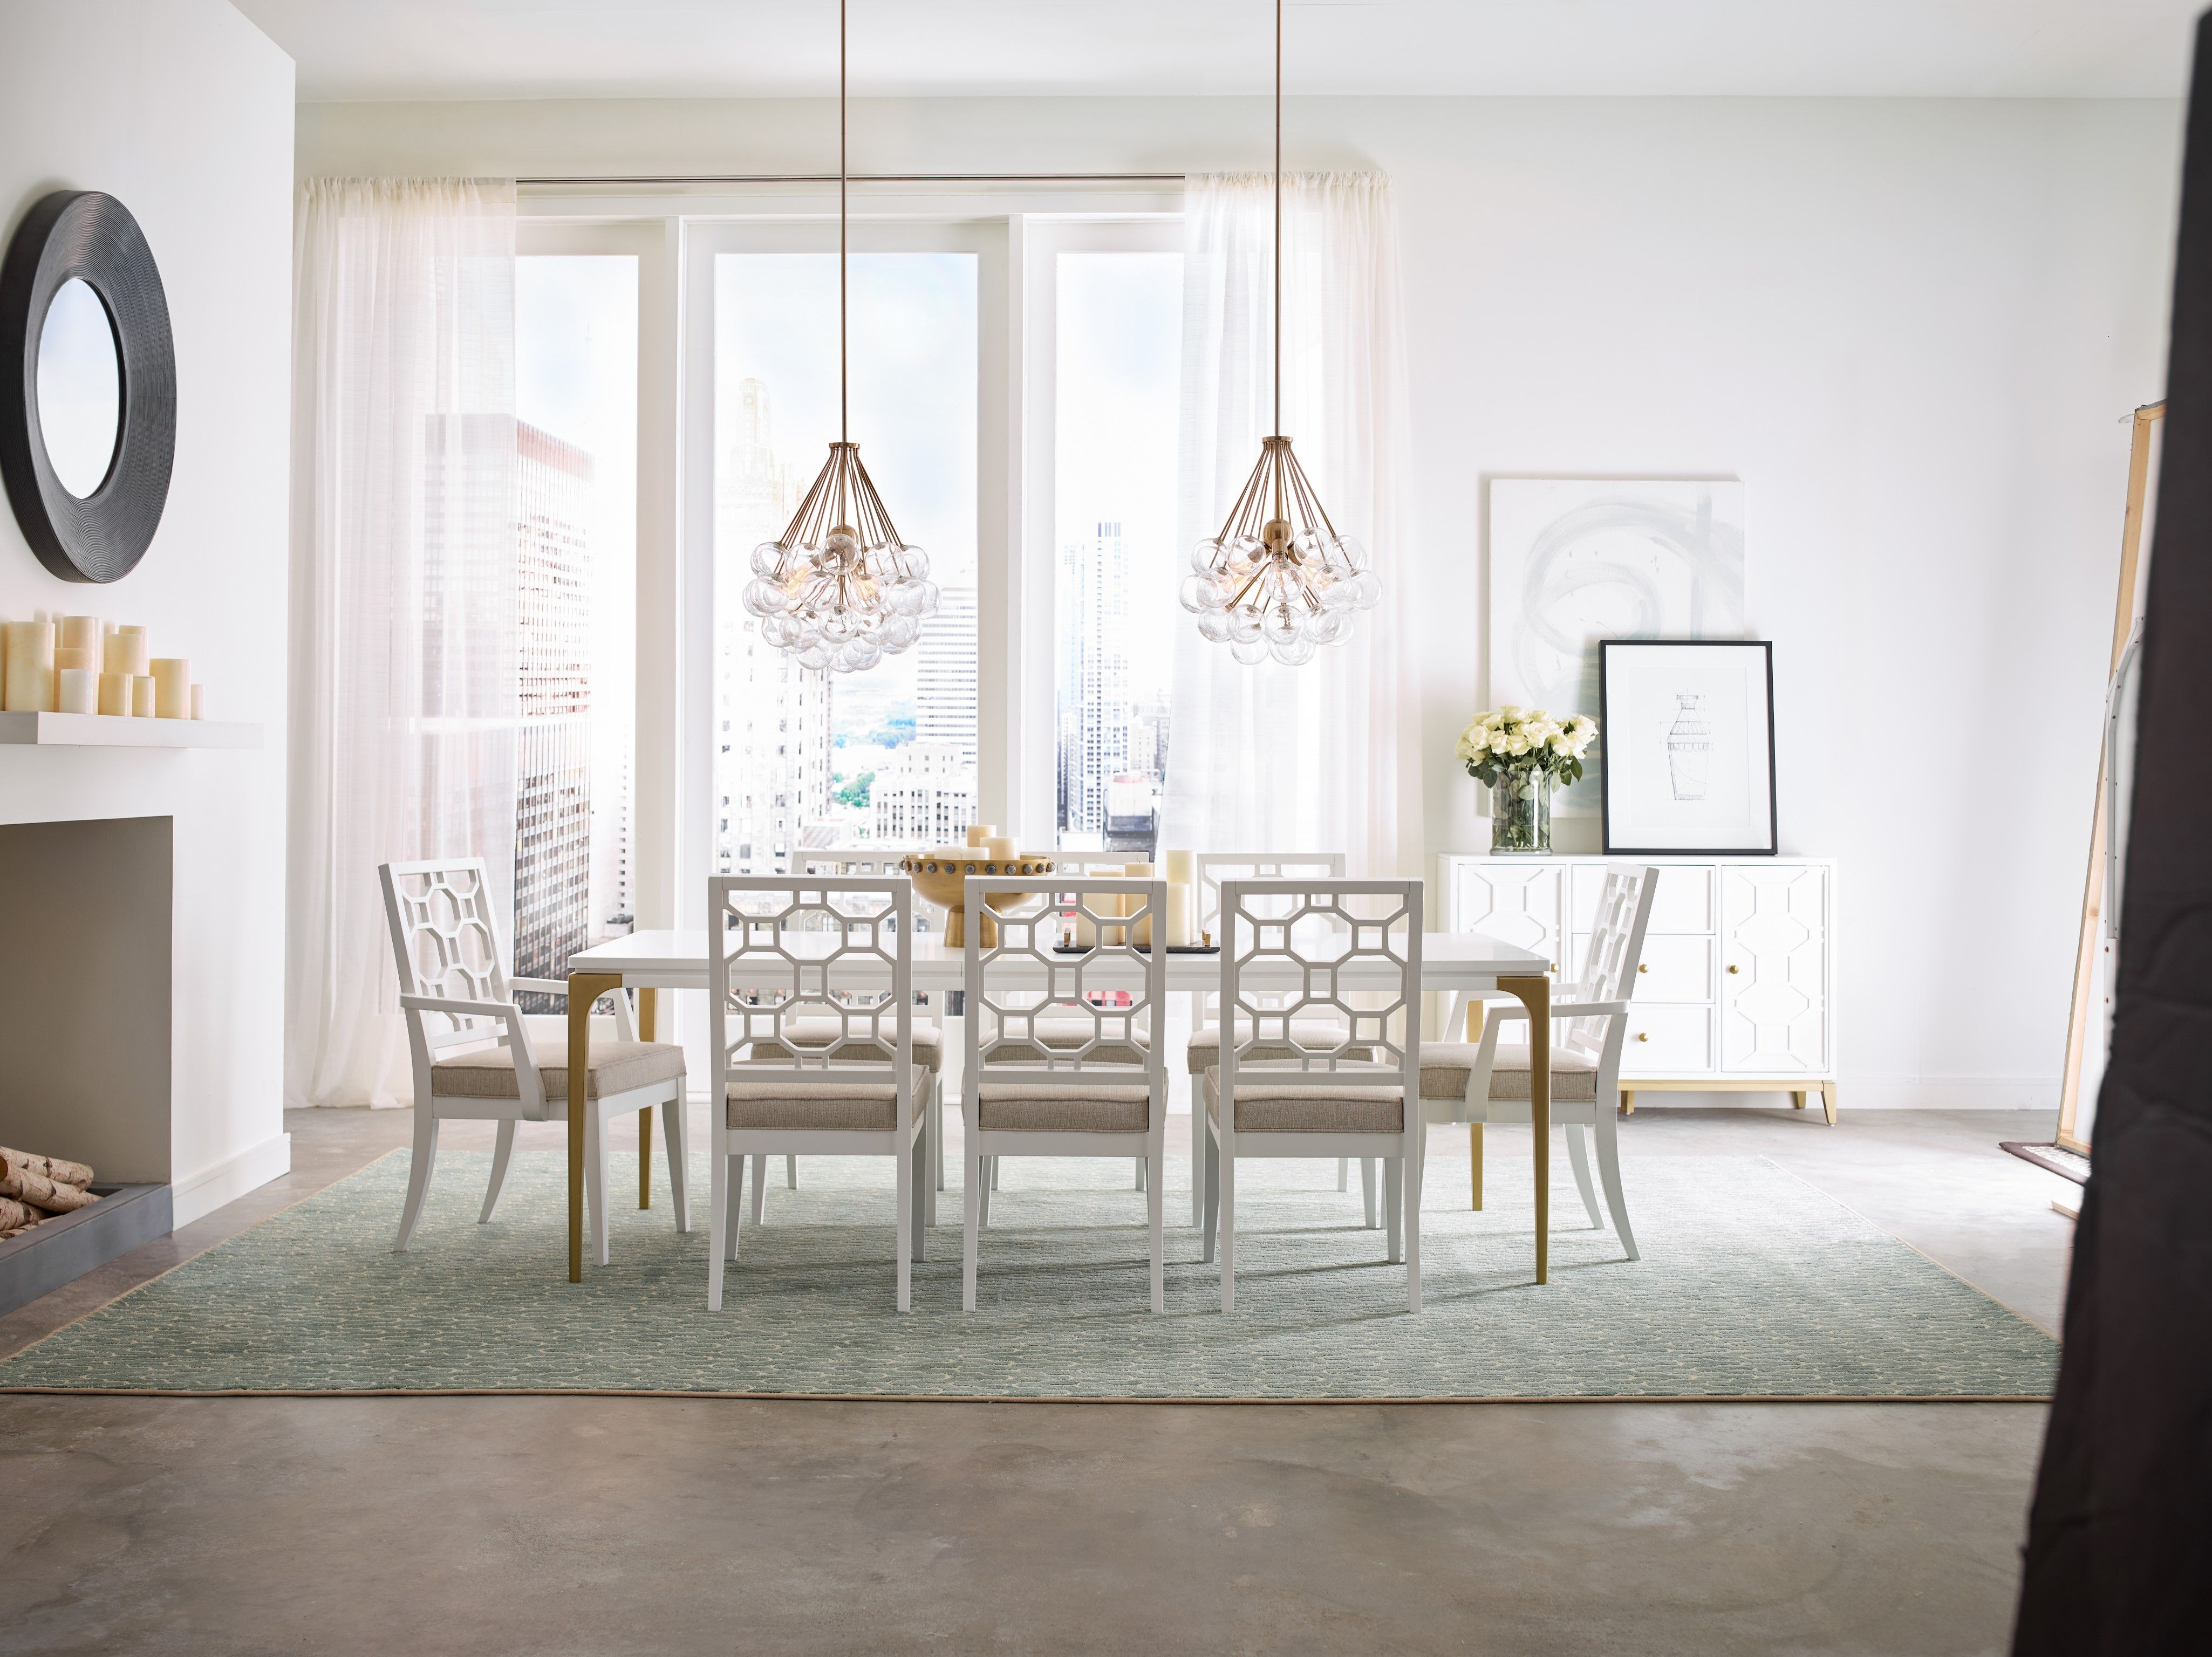 Chelsea Collection Dining Room Chelsea By Rachael Ray Legacy Classic Furniture Chelsea Rachaelrayhome Legacycl Dining Table Bright Furniture Furniture Dining rooms legacy classic